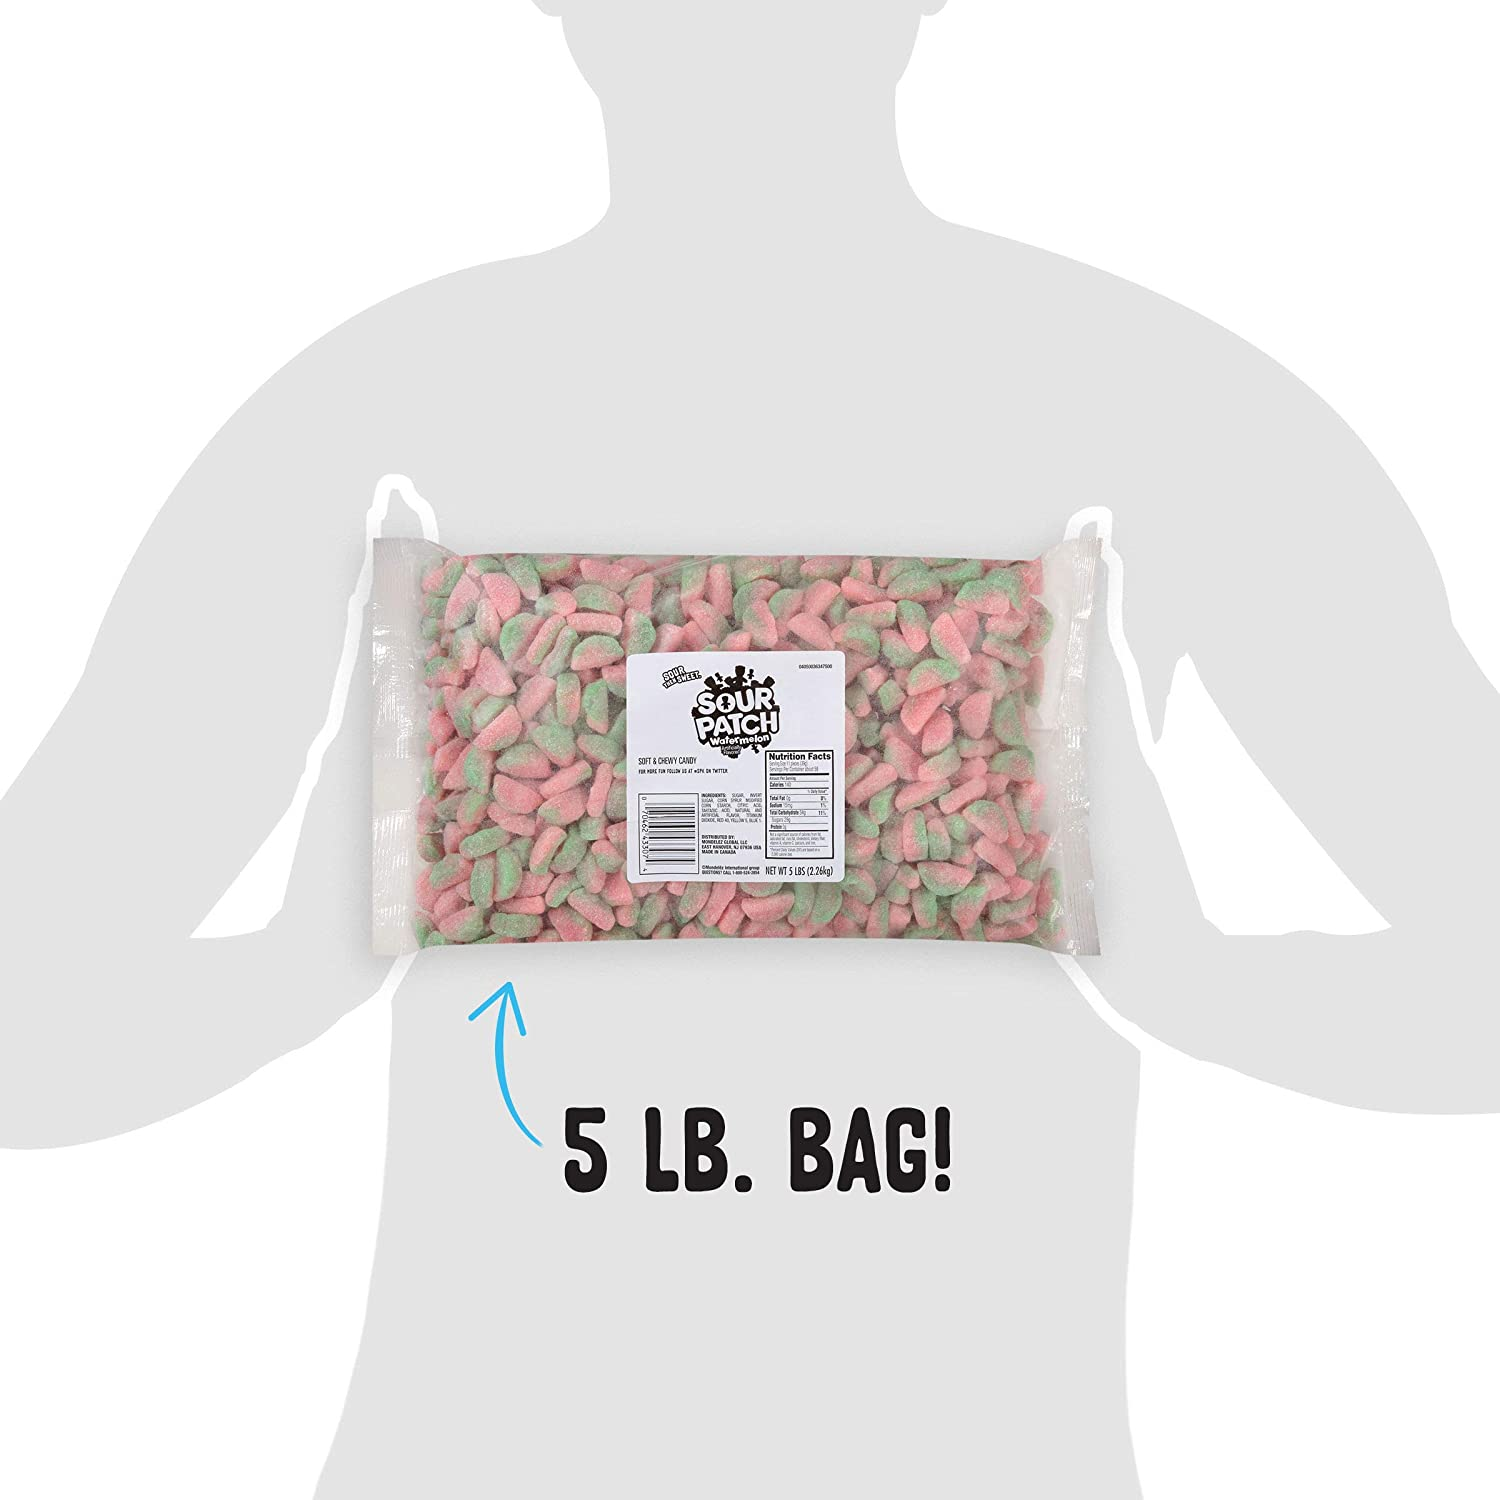 Sour Patch Kids Soft & Chewy Candy, 5 lb Bag, Red 5 Pound, Watermelon, 80 Oz : Grocery & Gourmet Food